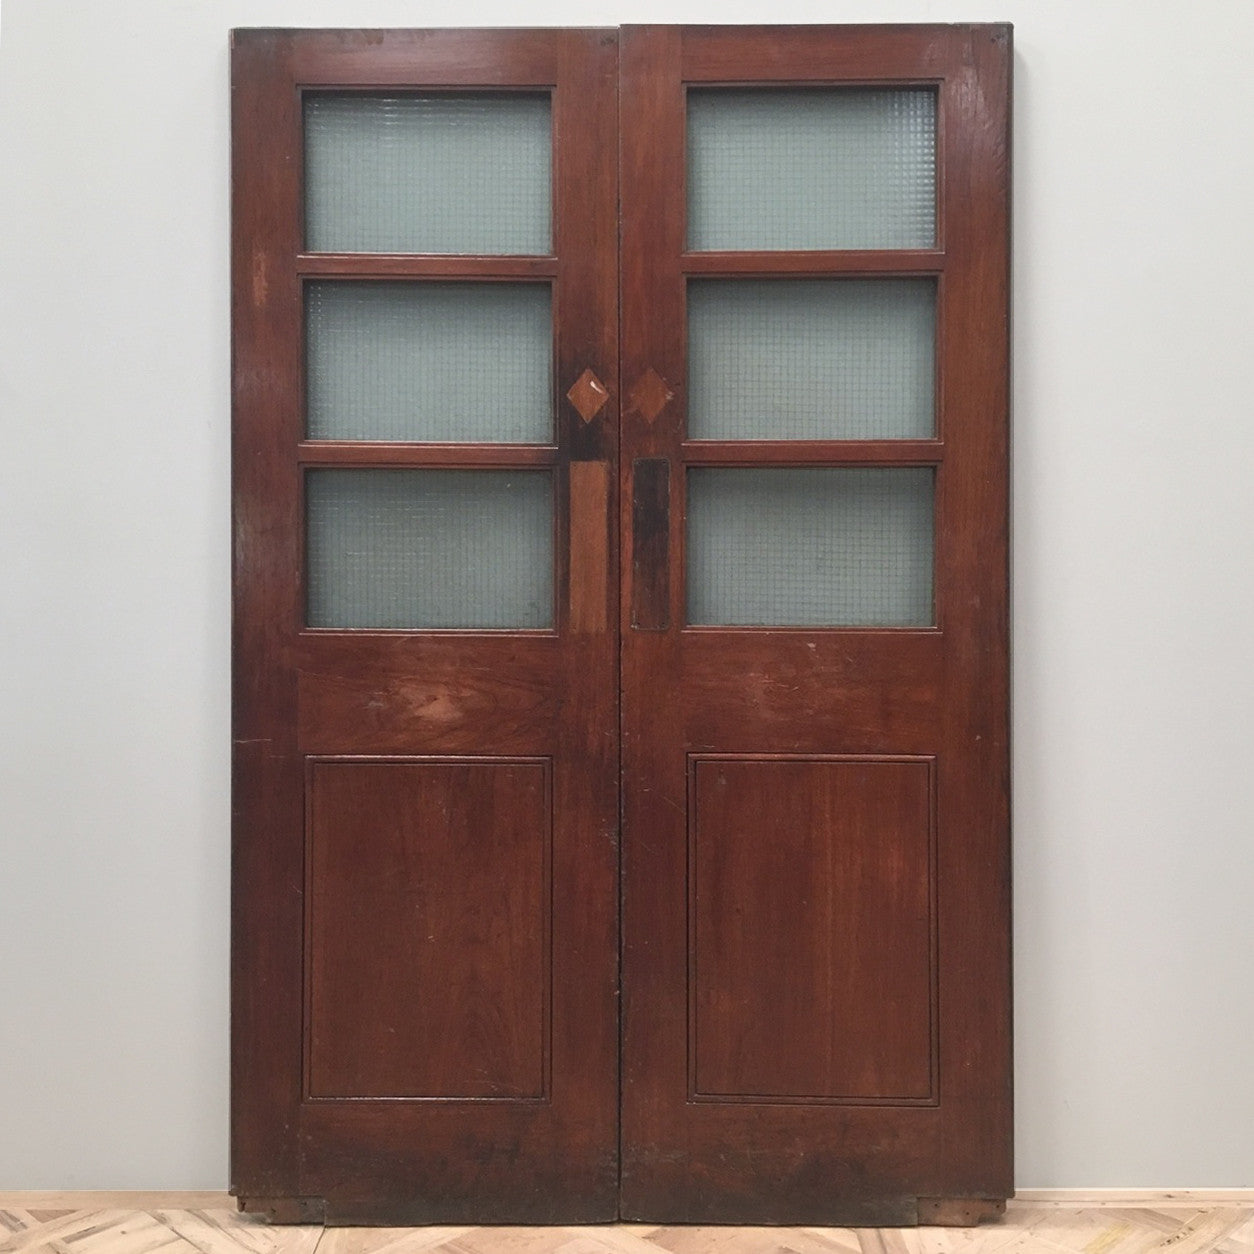 Reclaimed Teak Double Doors - 138cm x 210cm - architectural-forum